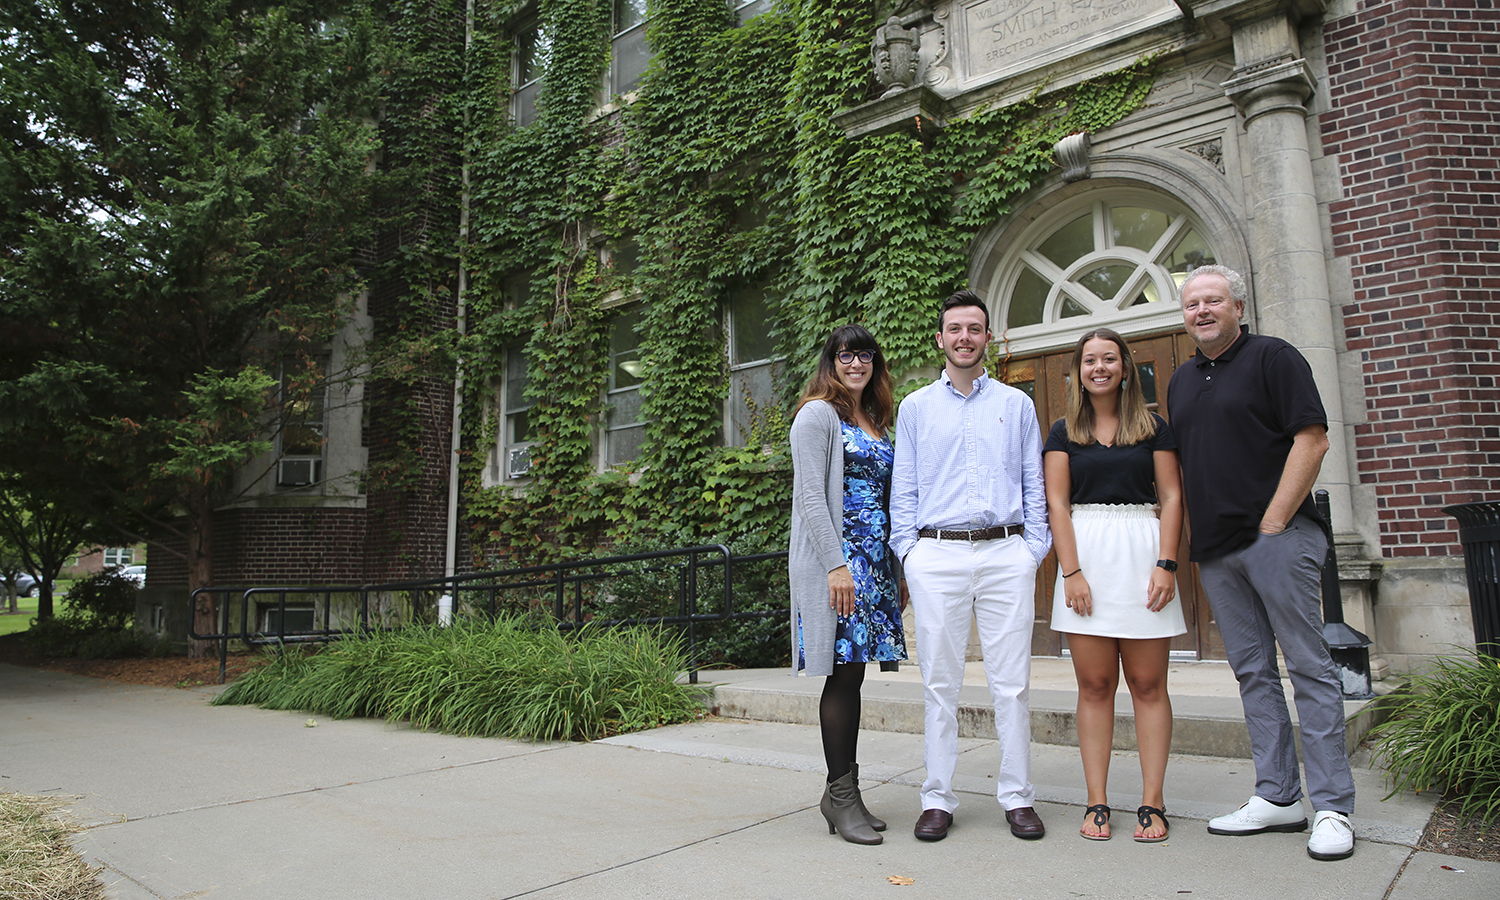 On a campus defined by community, new students can seek guidance from William Smith Assistant Dean Kelly Payne, Orientation Coordinators Tanner Arnold '20 and Miranda Smith '18, MAT '19, and Hobart Interim Assistant Dean Joseph Mink, pictured here in front of Smith Hall.